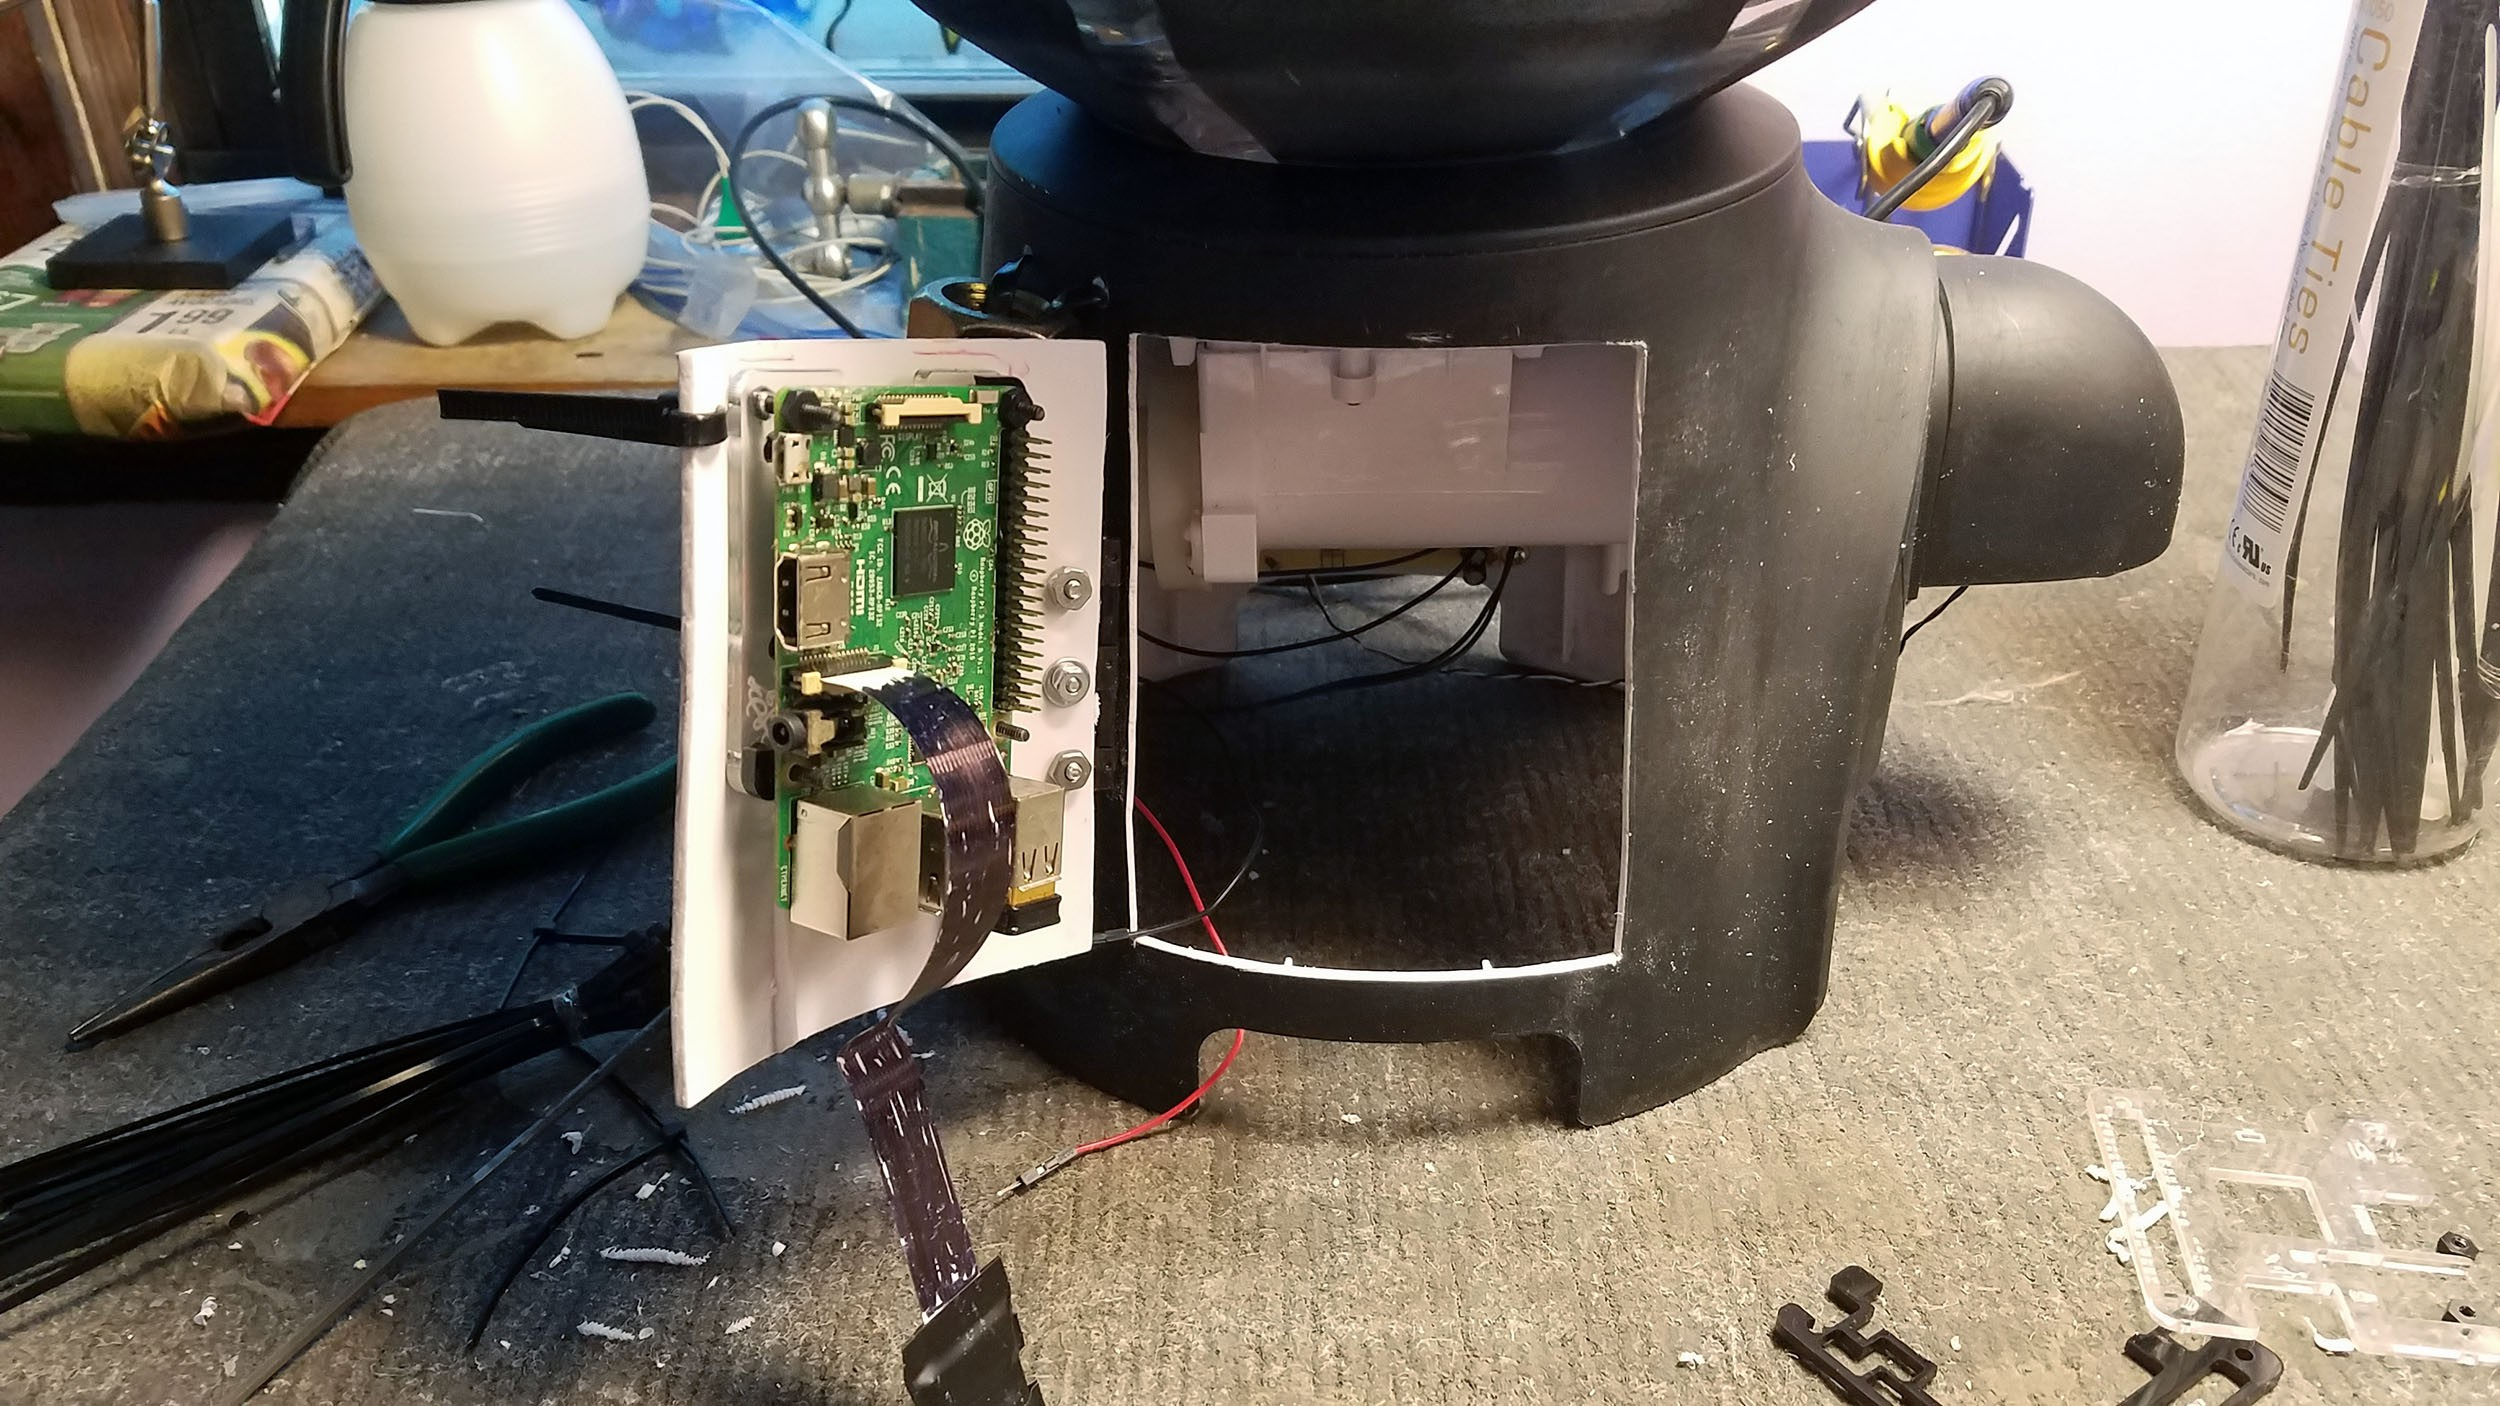 Instructions Magic Flute Of Rat Mind Control W Raspberry Pi Pcb Cutting Machine Sewing Modification Electronics Projects Case Lying Around And With A Little I Made It Fit The 3b Im Using For This Project How You Attach Isnt Important To